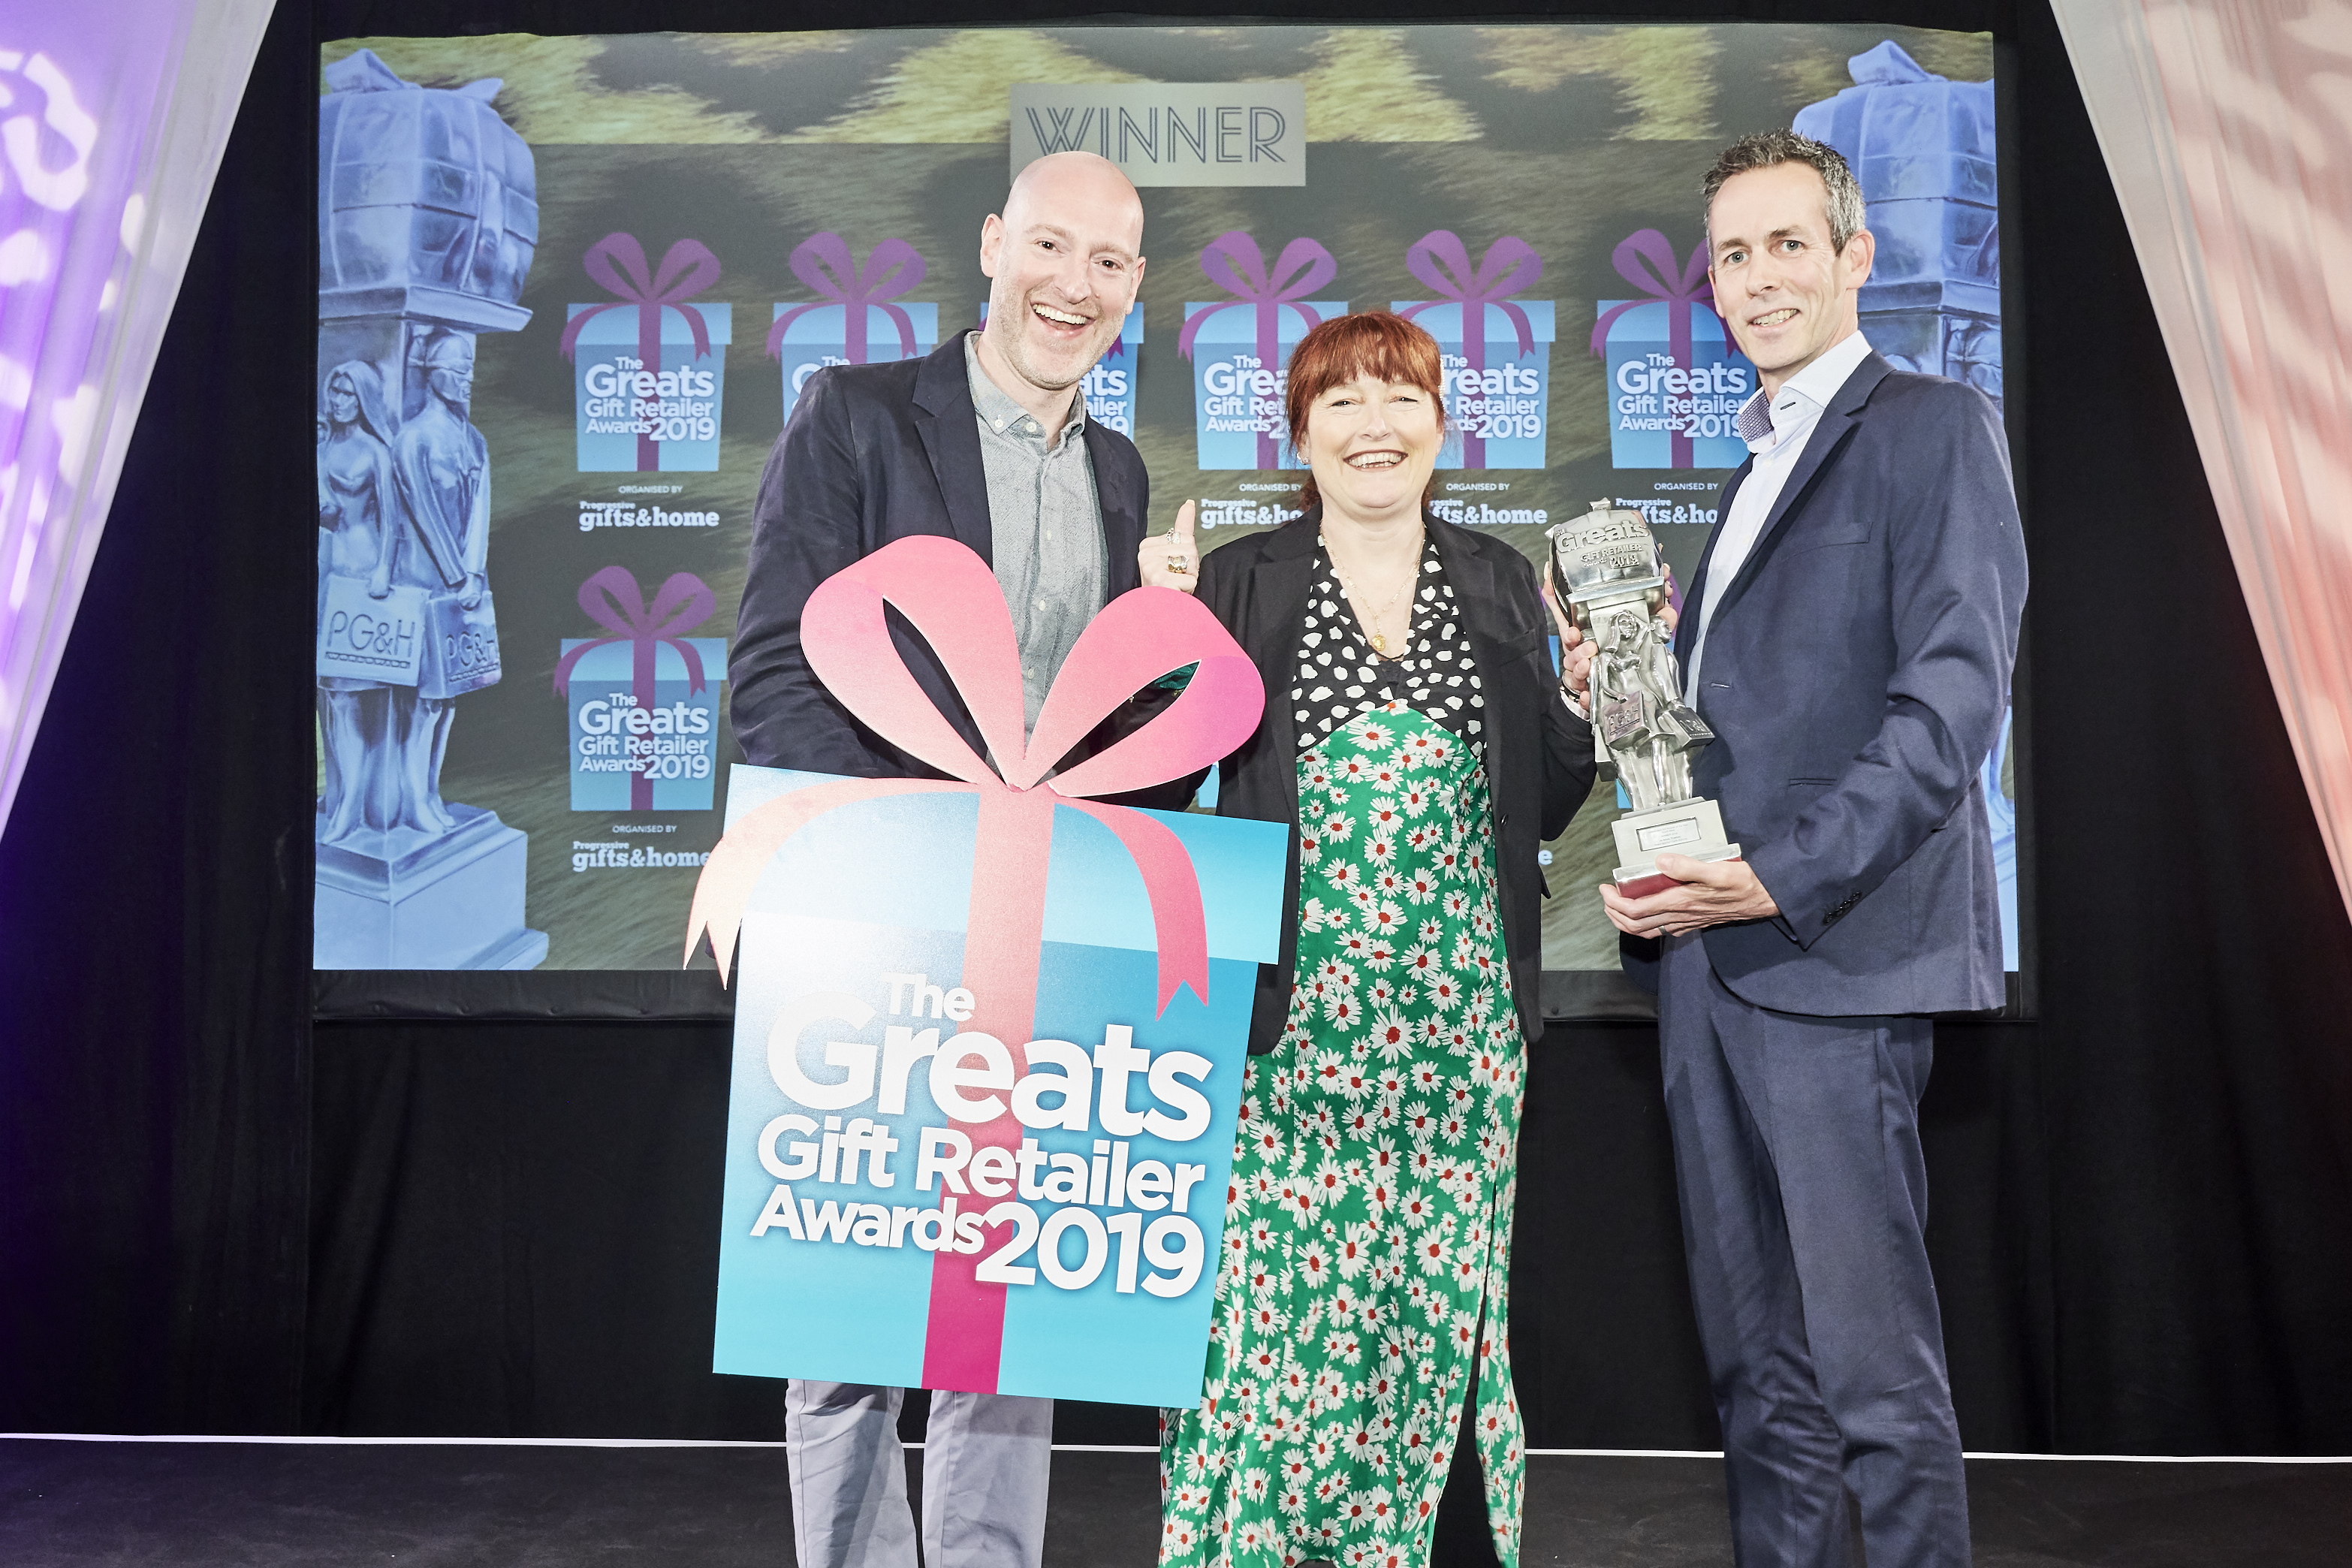 Above: Jo Webber's own retailing prowess was recognised in The Greats gift retailer awards in May at which Jo Amor won Best Independent Gift Retailer – South West.